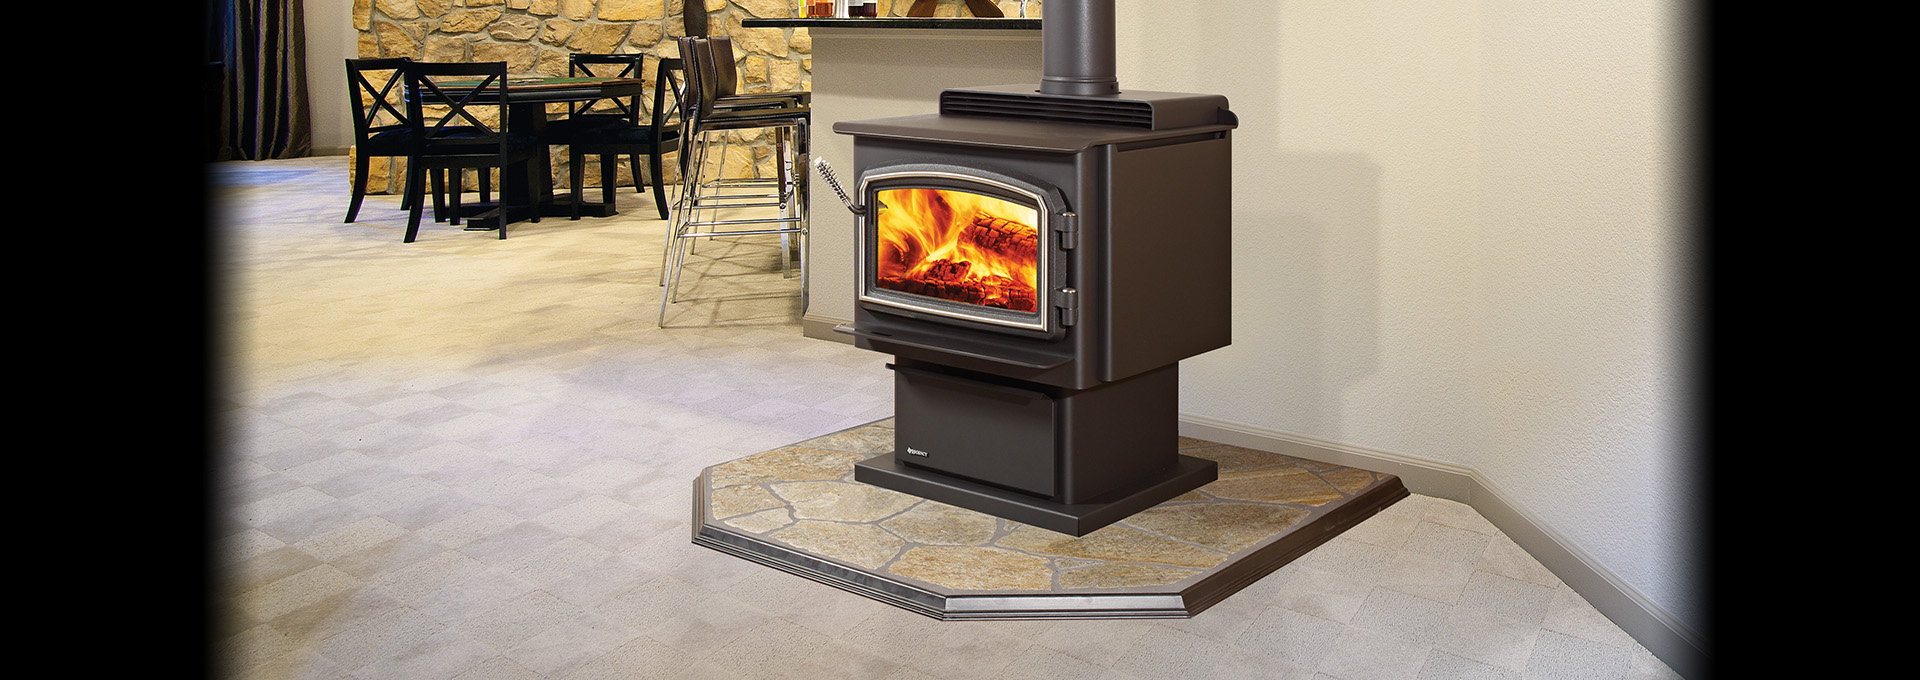 Some Like It Hot Durham Ontario Fireplaces Stoves